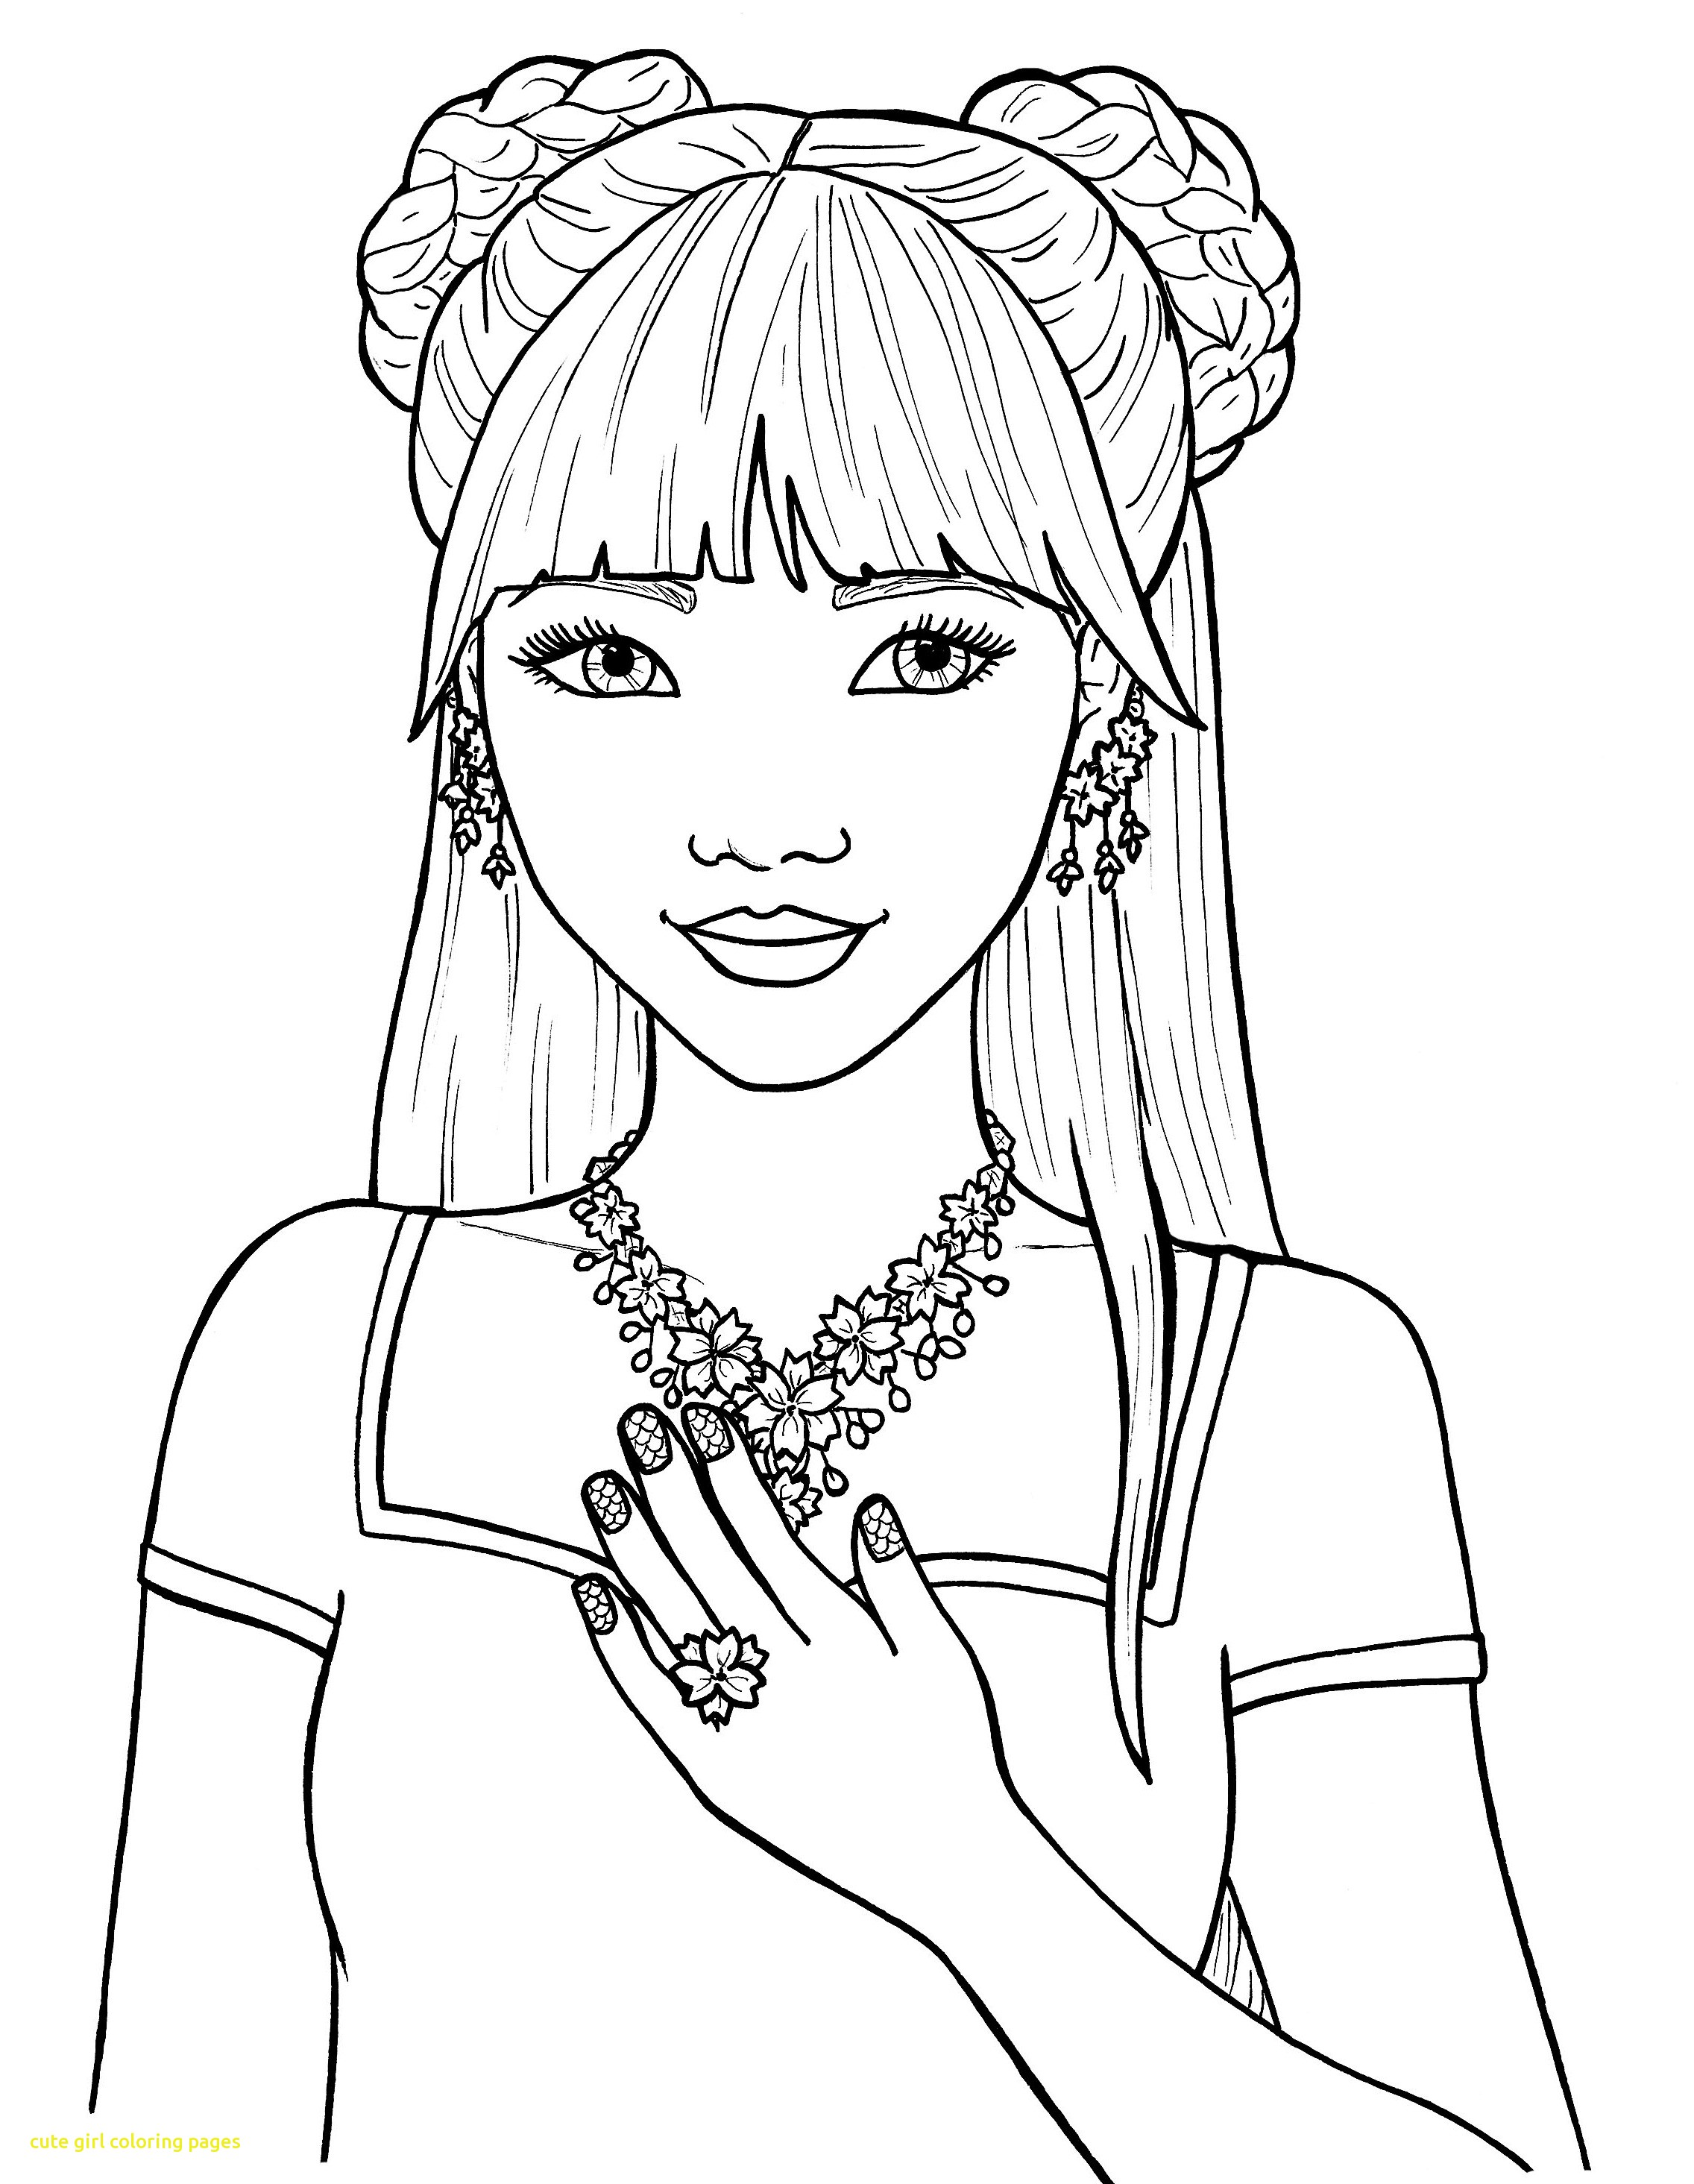 coloring sheet girl coloring pages for girls best coloring pages for kids sheet girl coloring